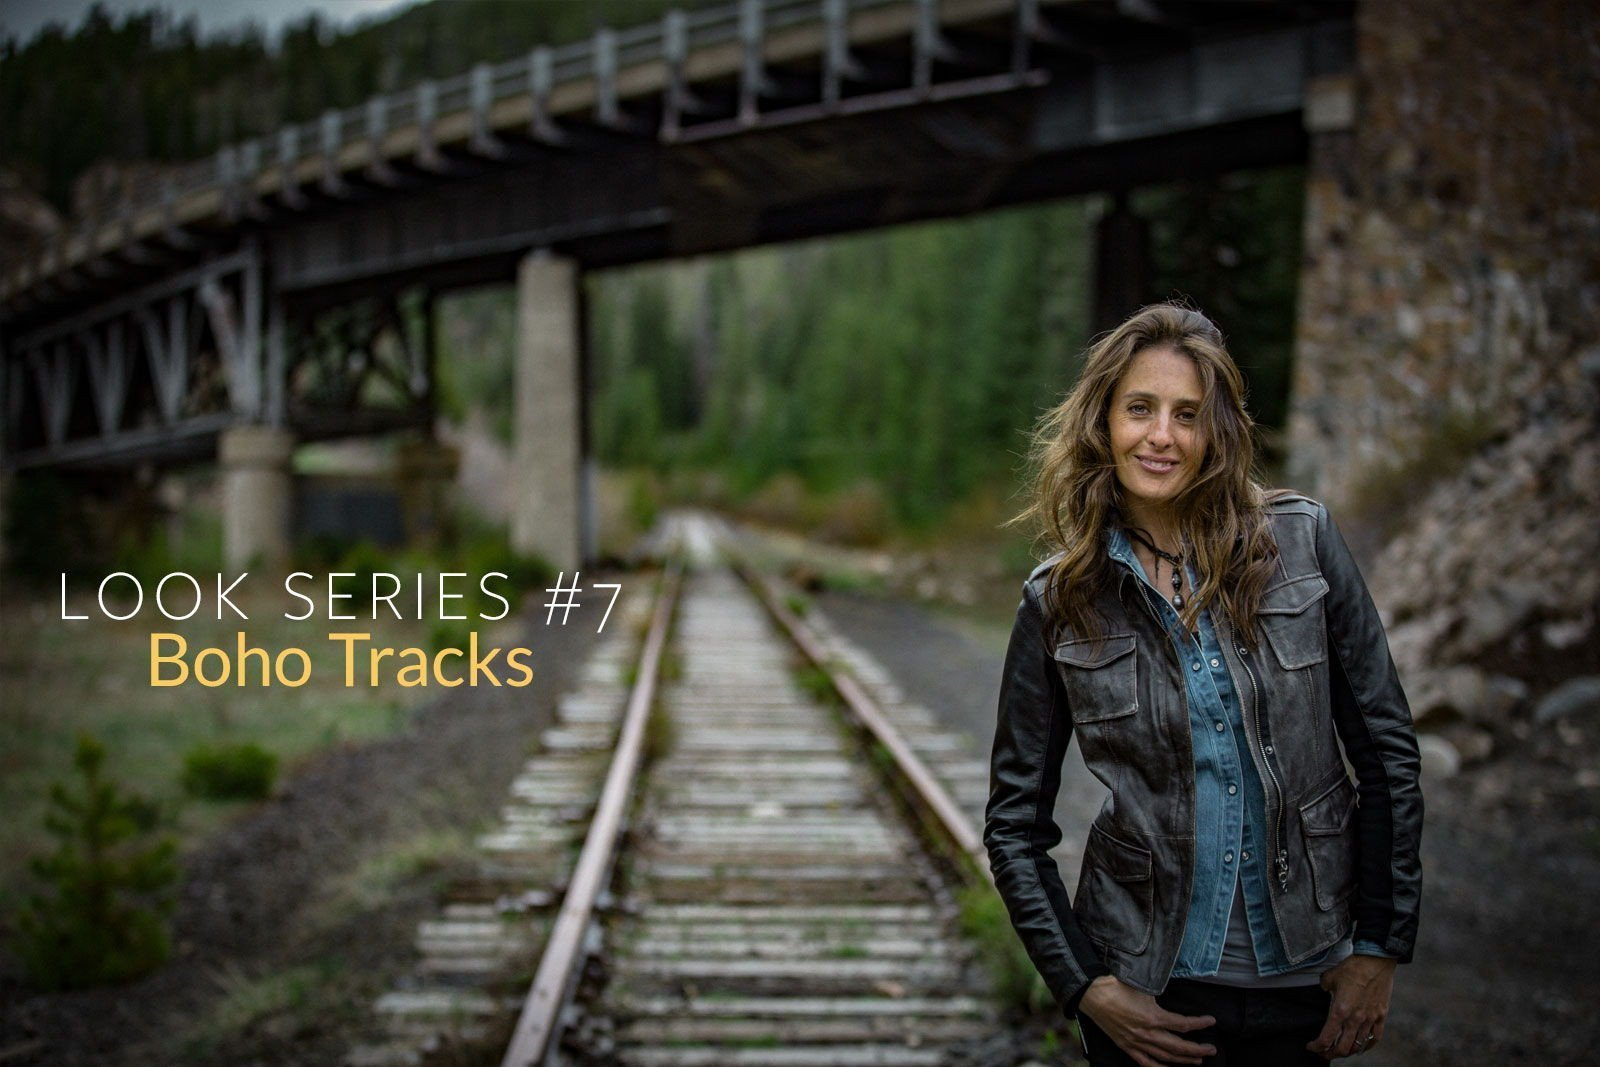 Look Series #7: Boho Tracks